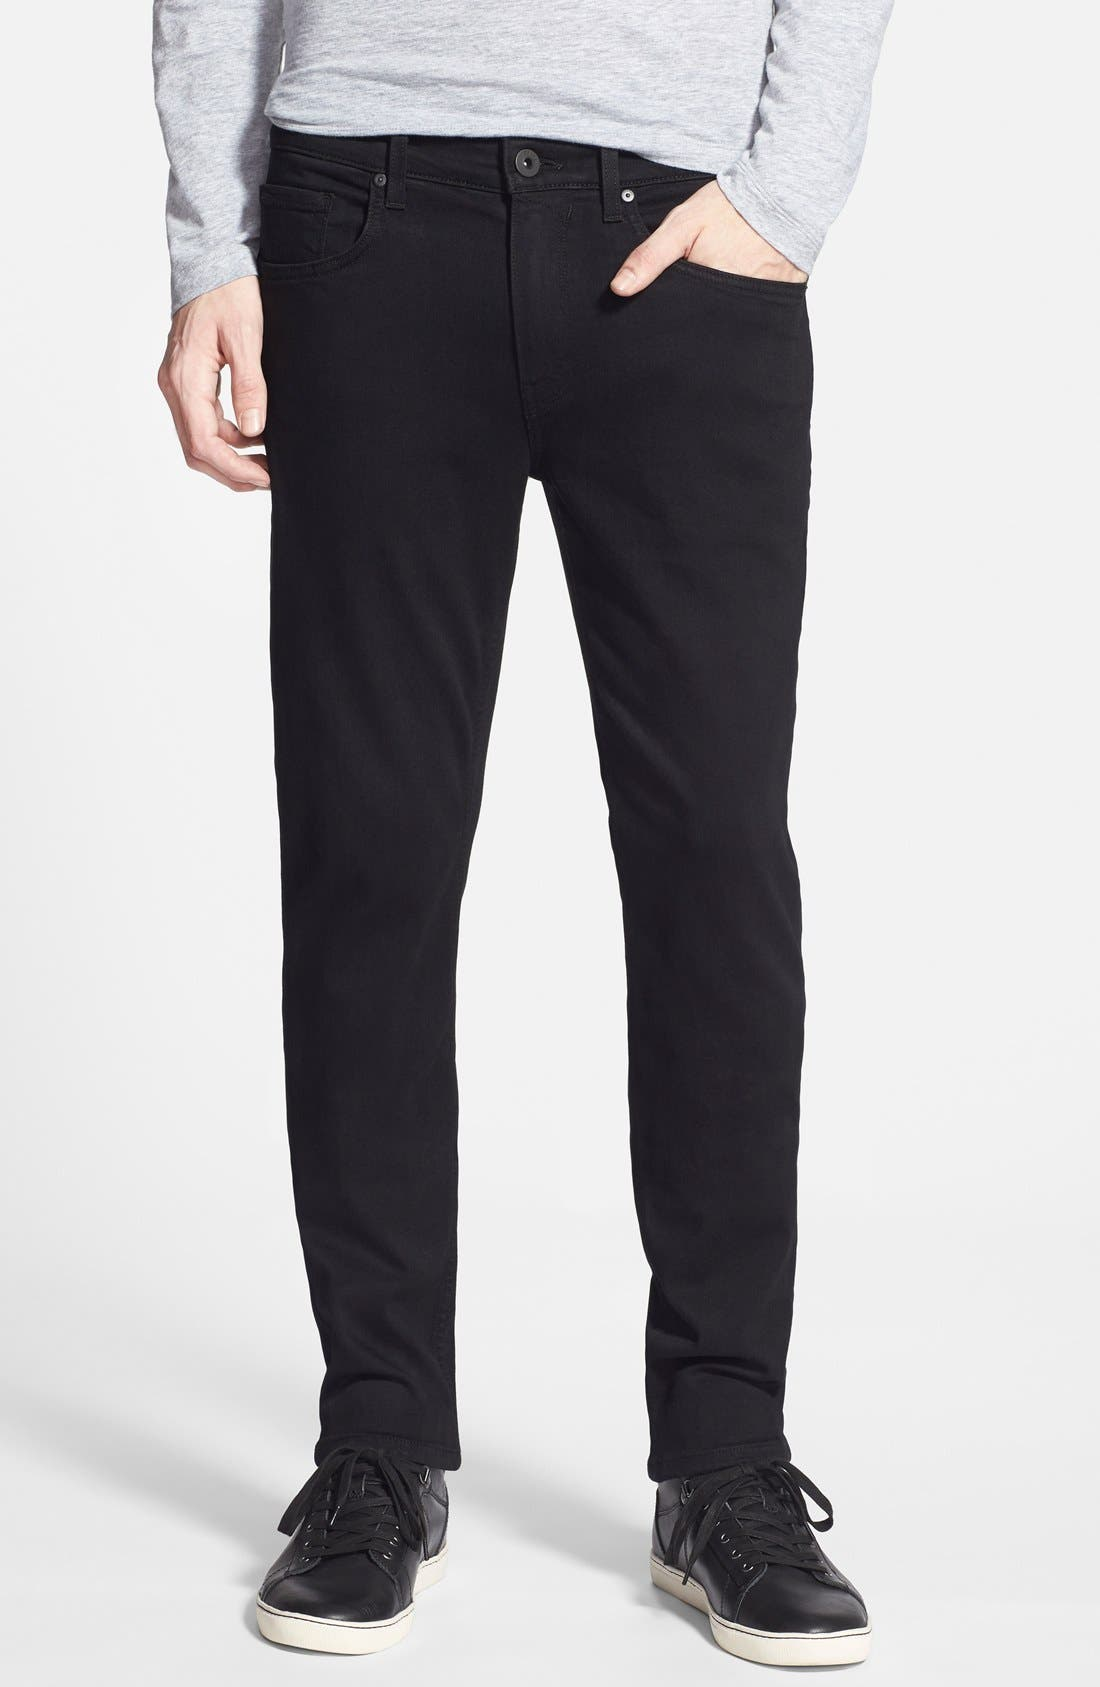 PAIGE Transcend – Lennox Slim Fit Jeans (Black Shadow)